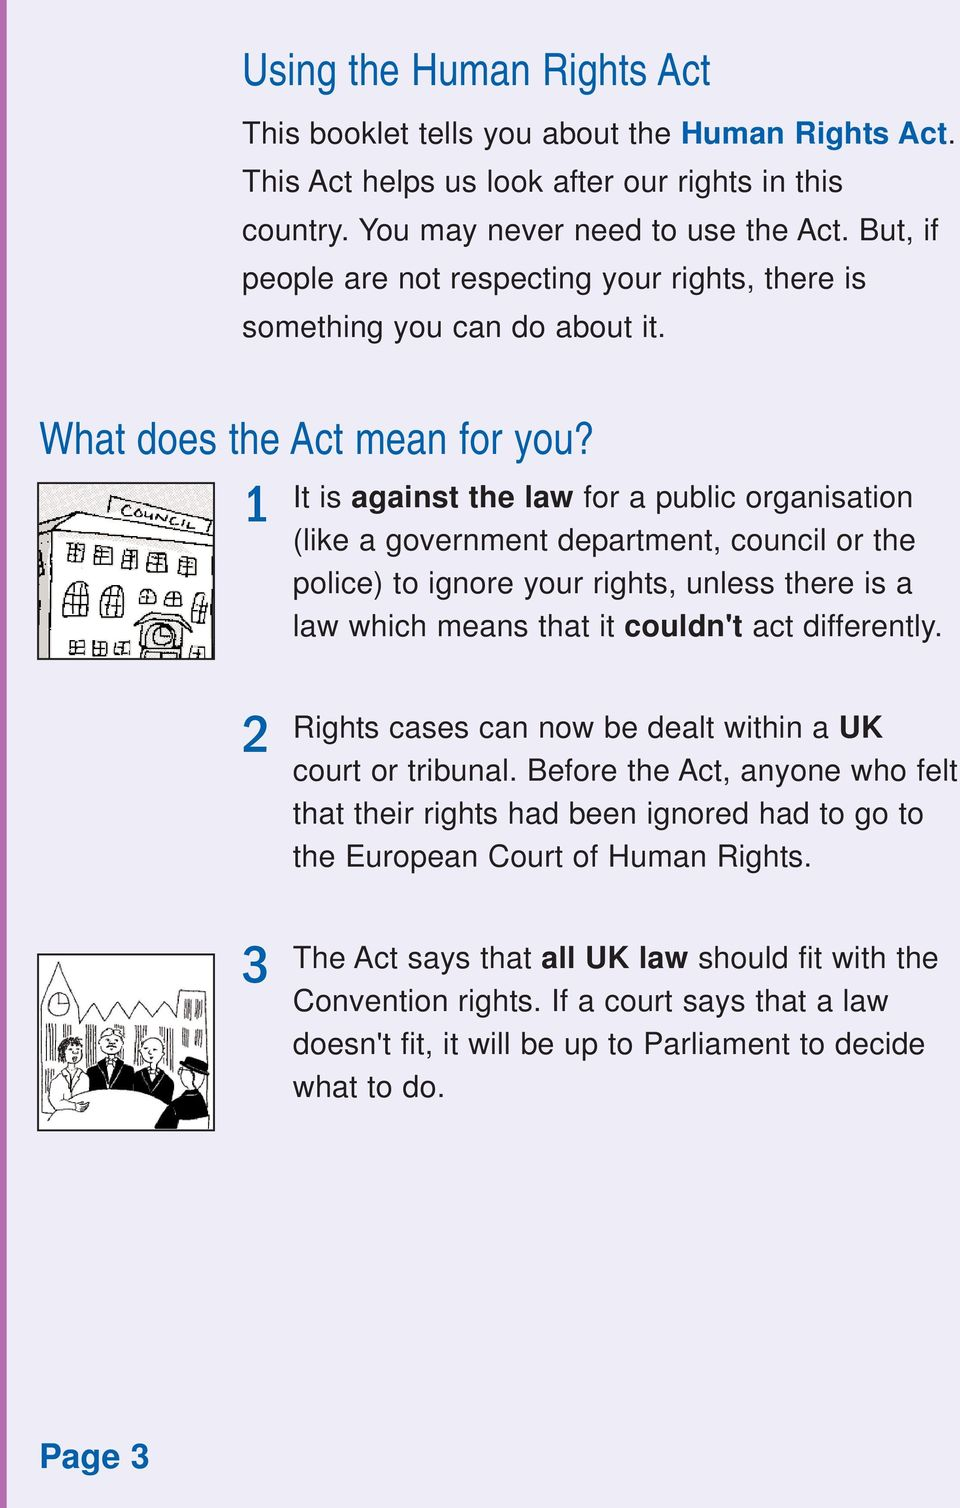 1 It is against the law for a public organisation (like a government department, council or the police) to ignore your rights, unless there is a law which means that it couldn't act differently.